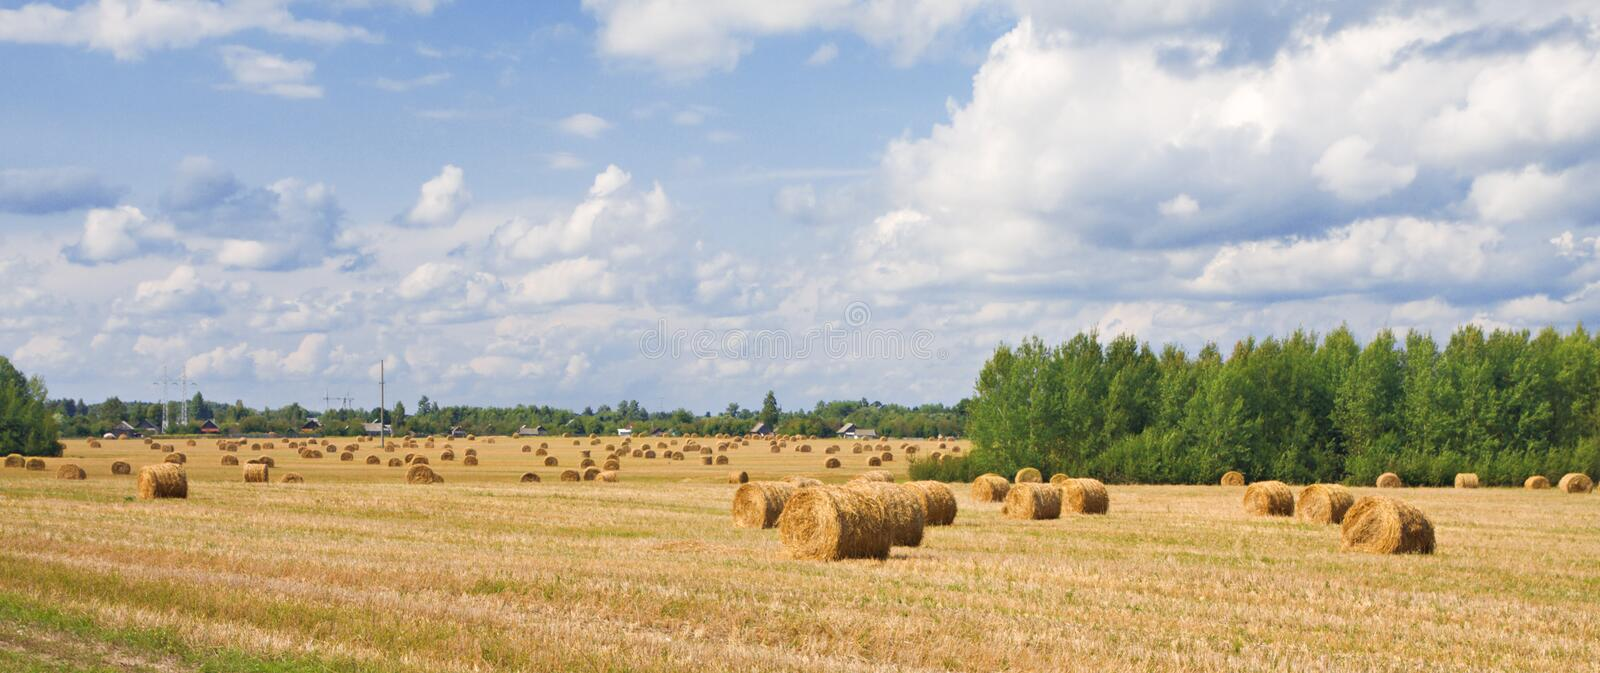 Hay bales in a field royalty free stock photo